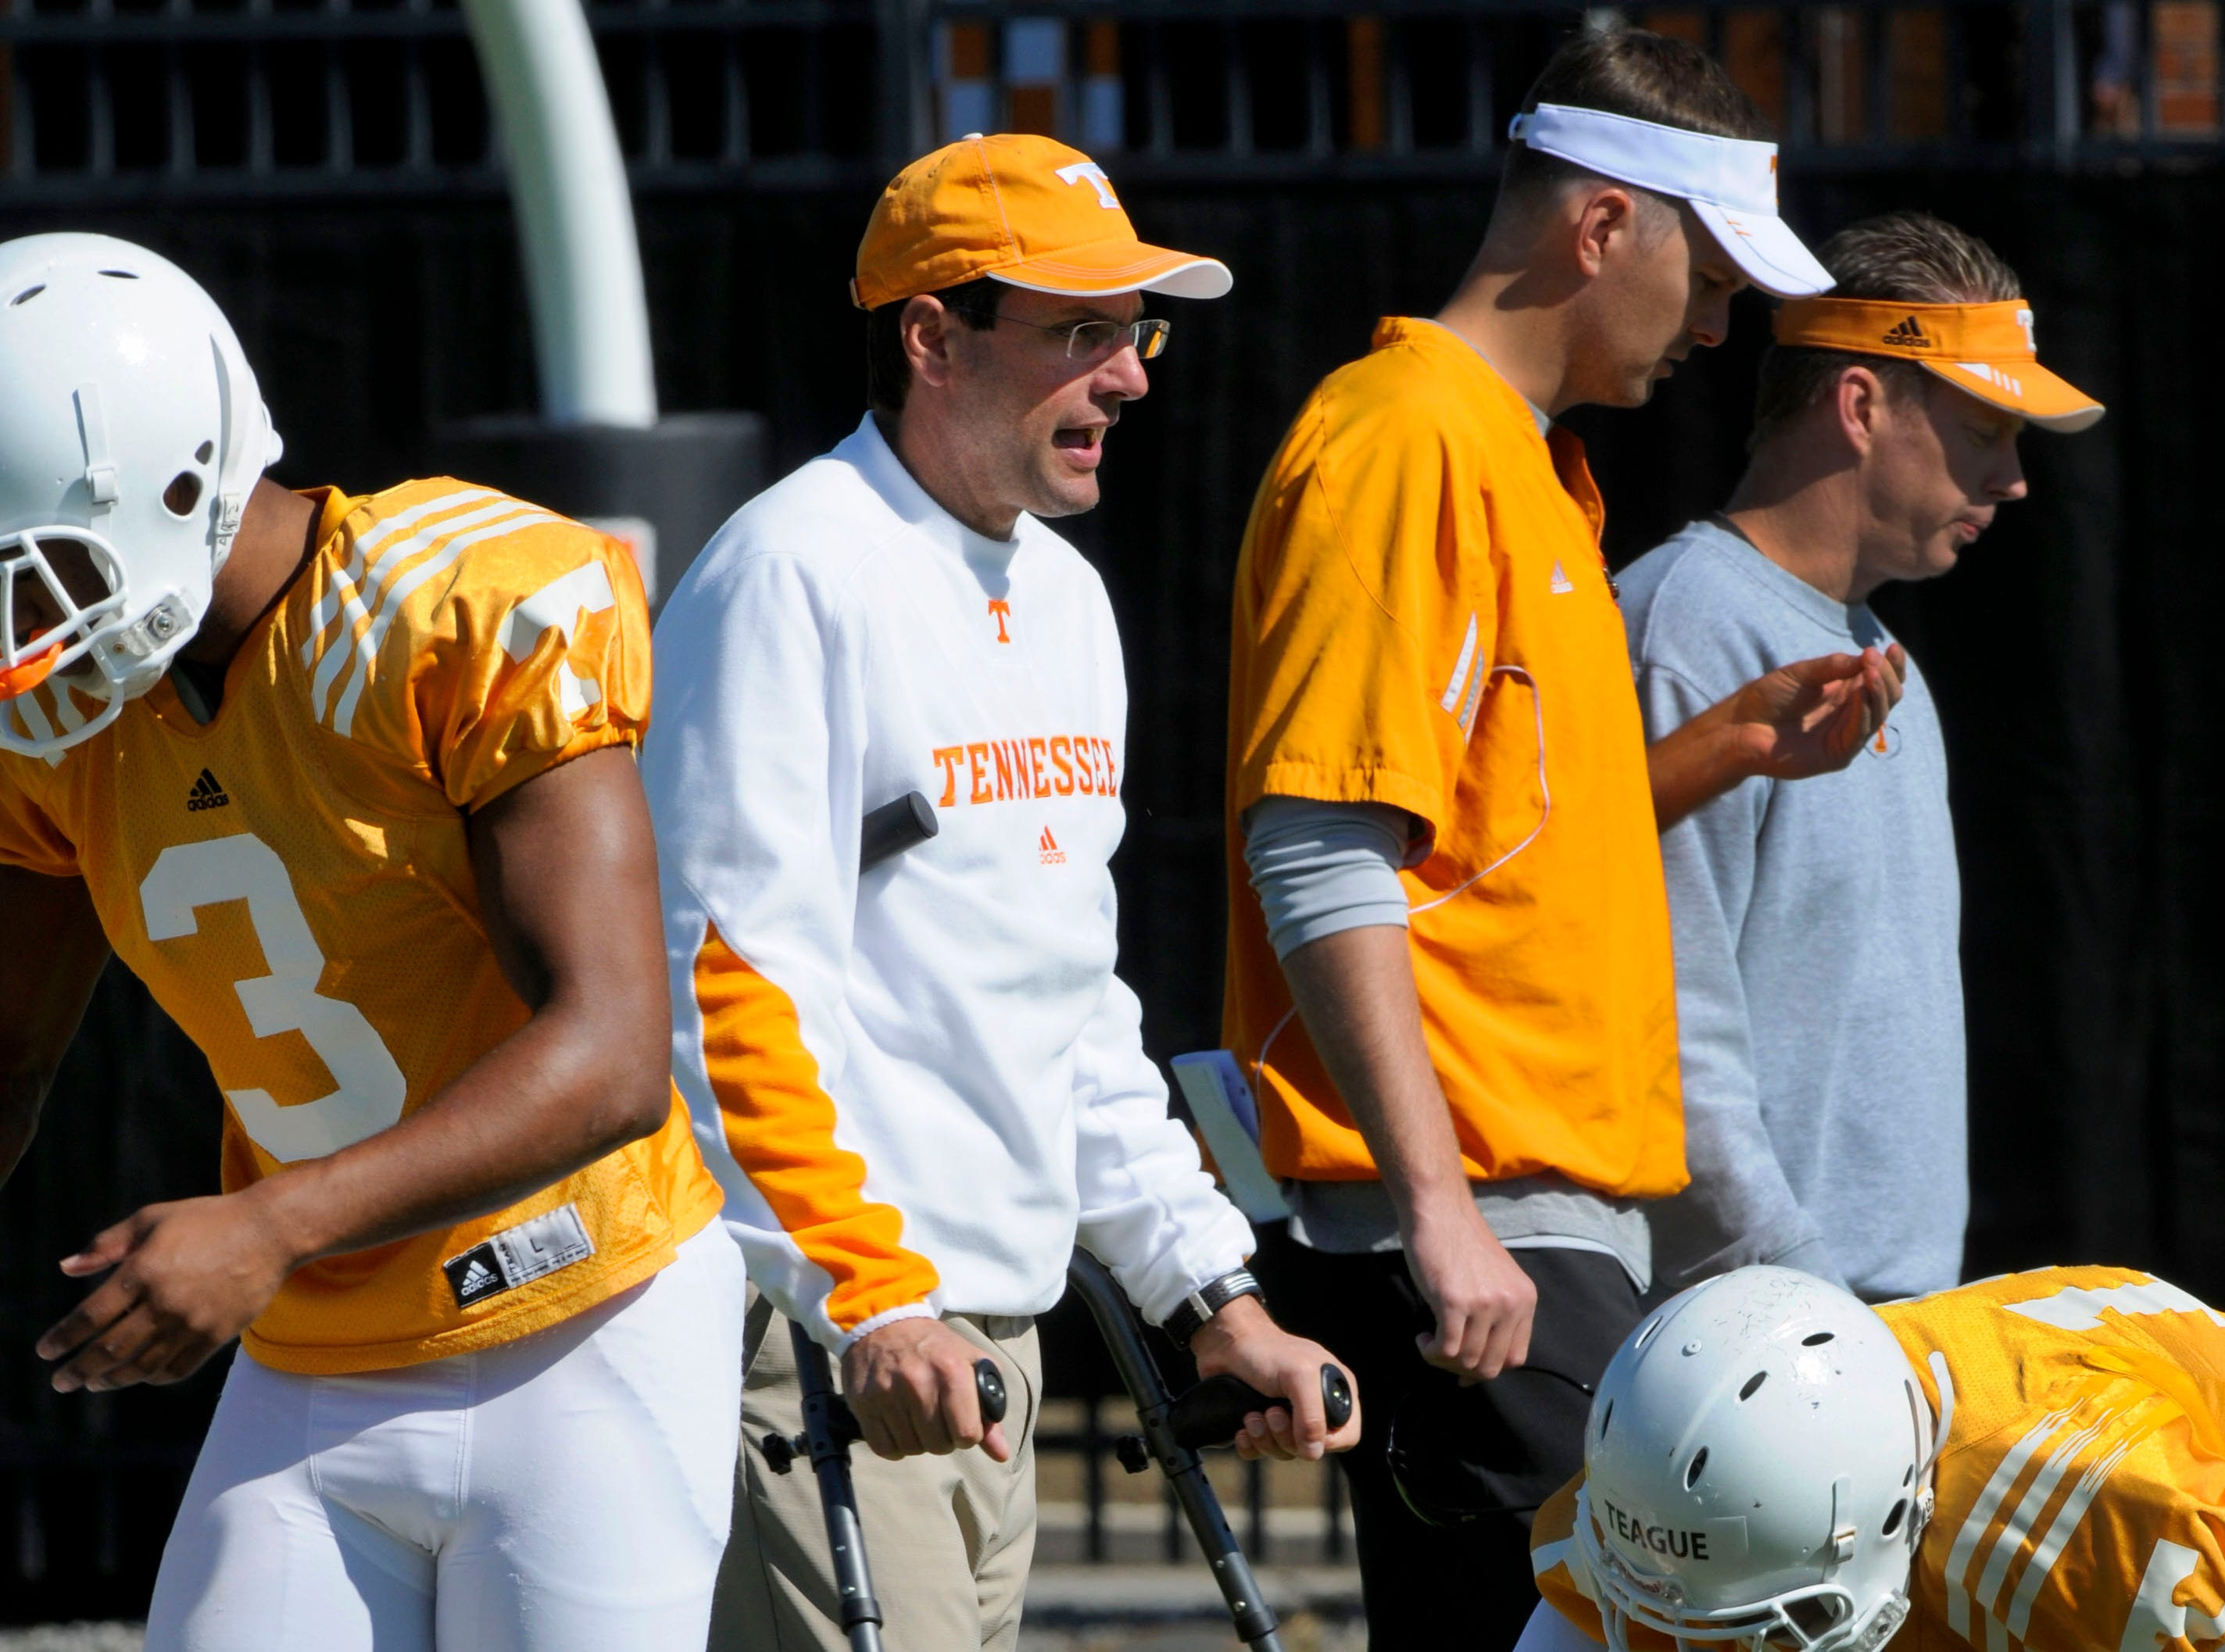 After a short walk on his crutches away from the media position Tennessee head coach Derek Dooley returned to his golf cart at practice Thursday, Oct. 11, 2012.